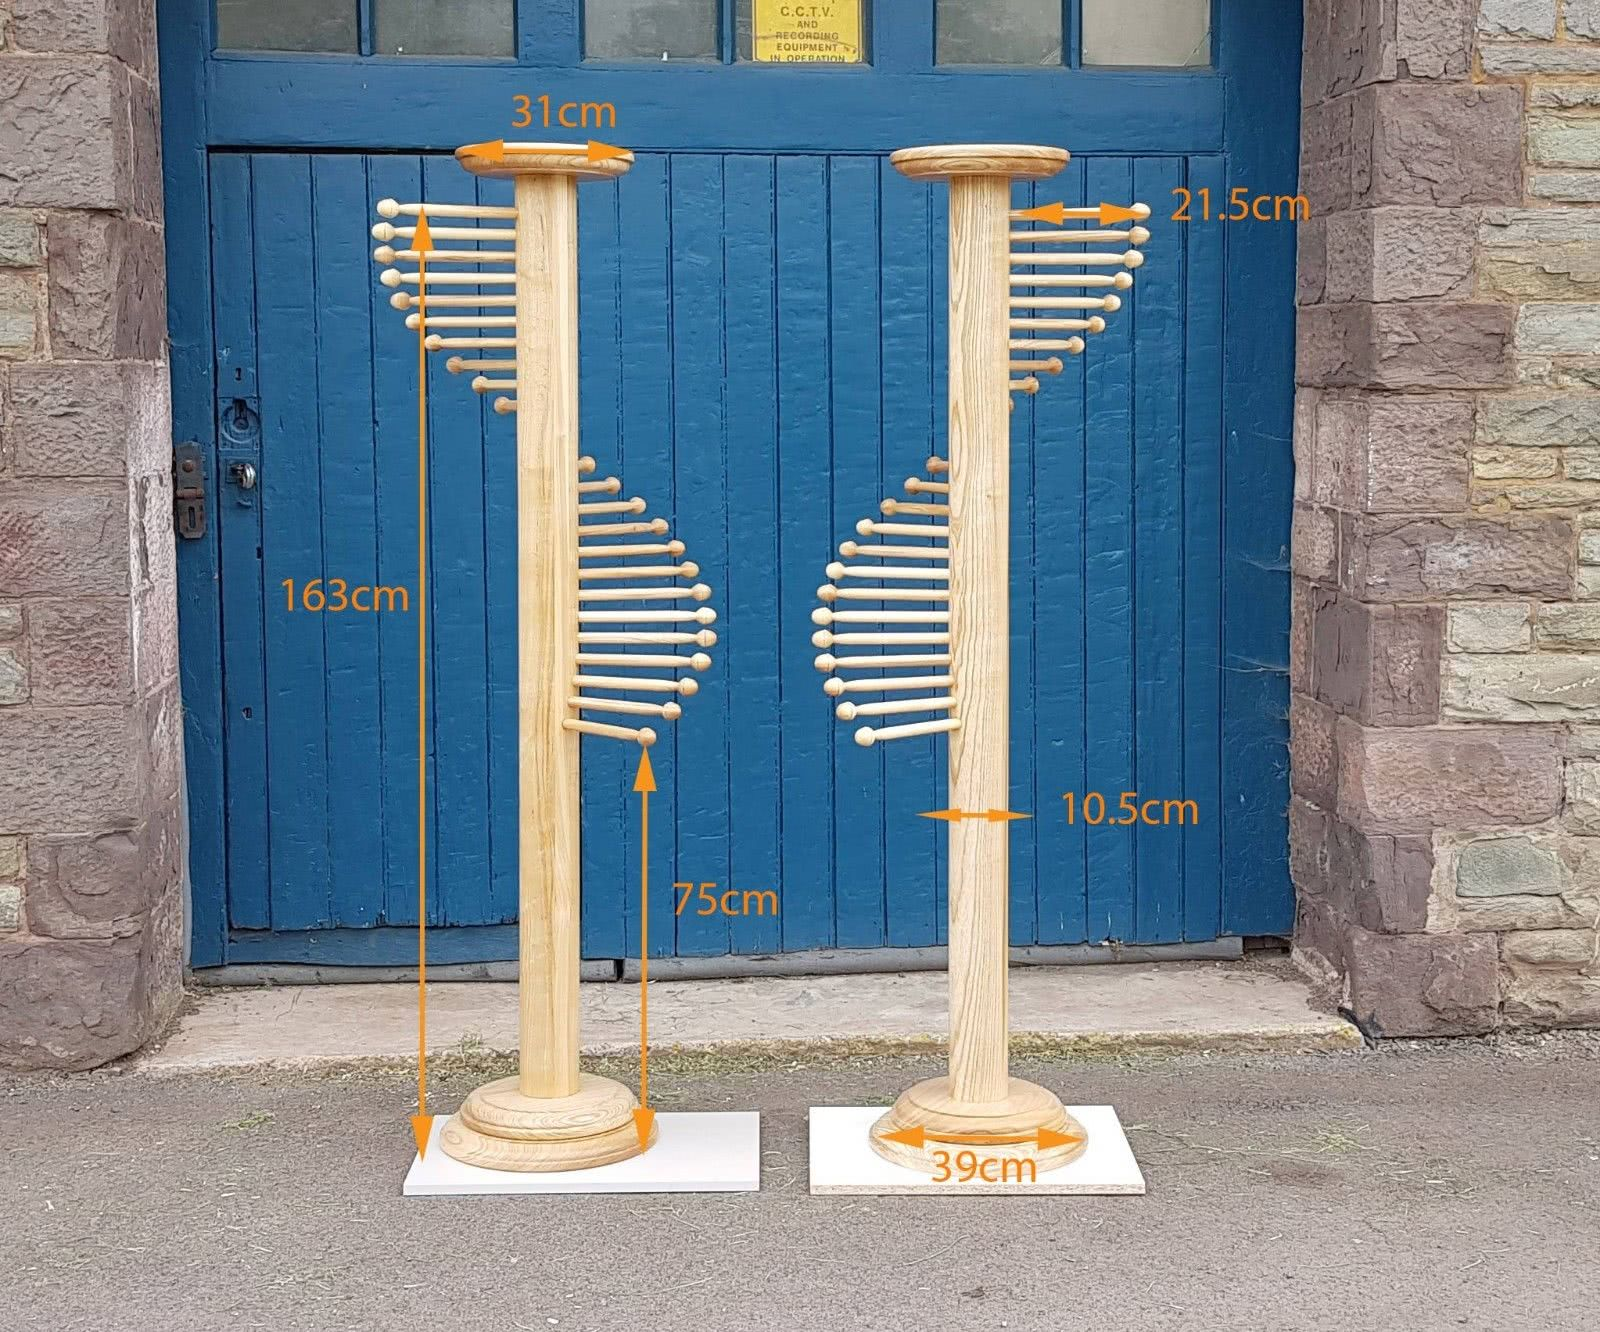 Pair of Scarf Stands outside of workshop with measurements in centimeters